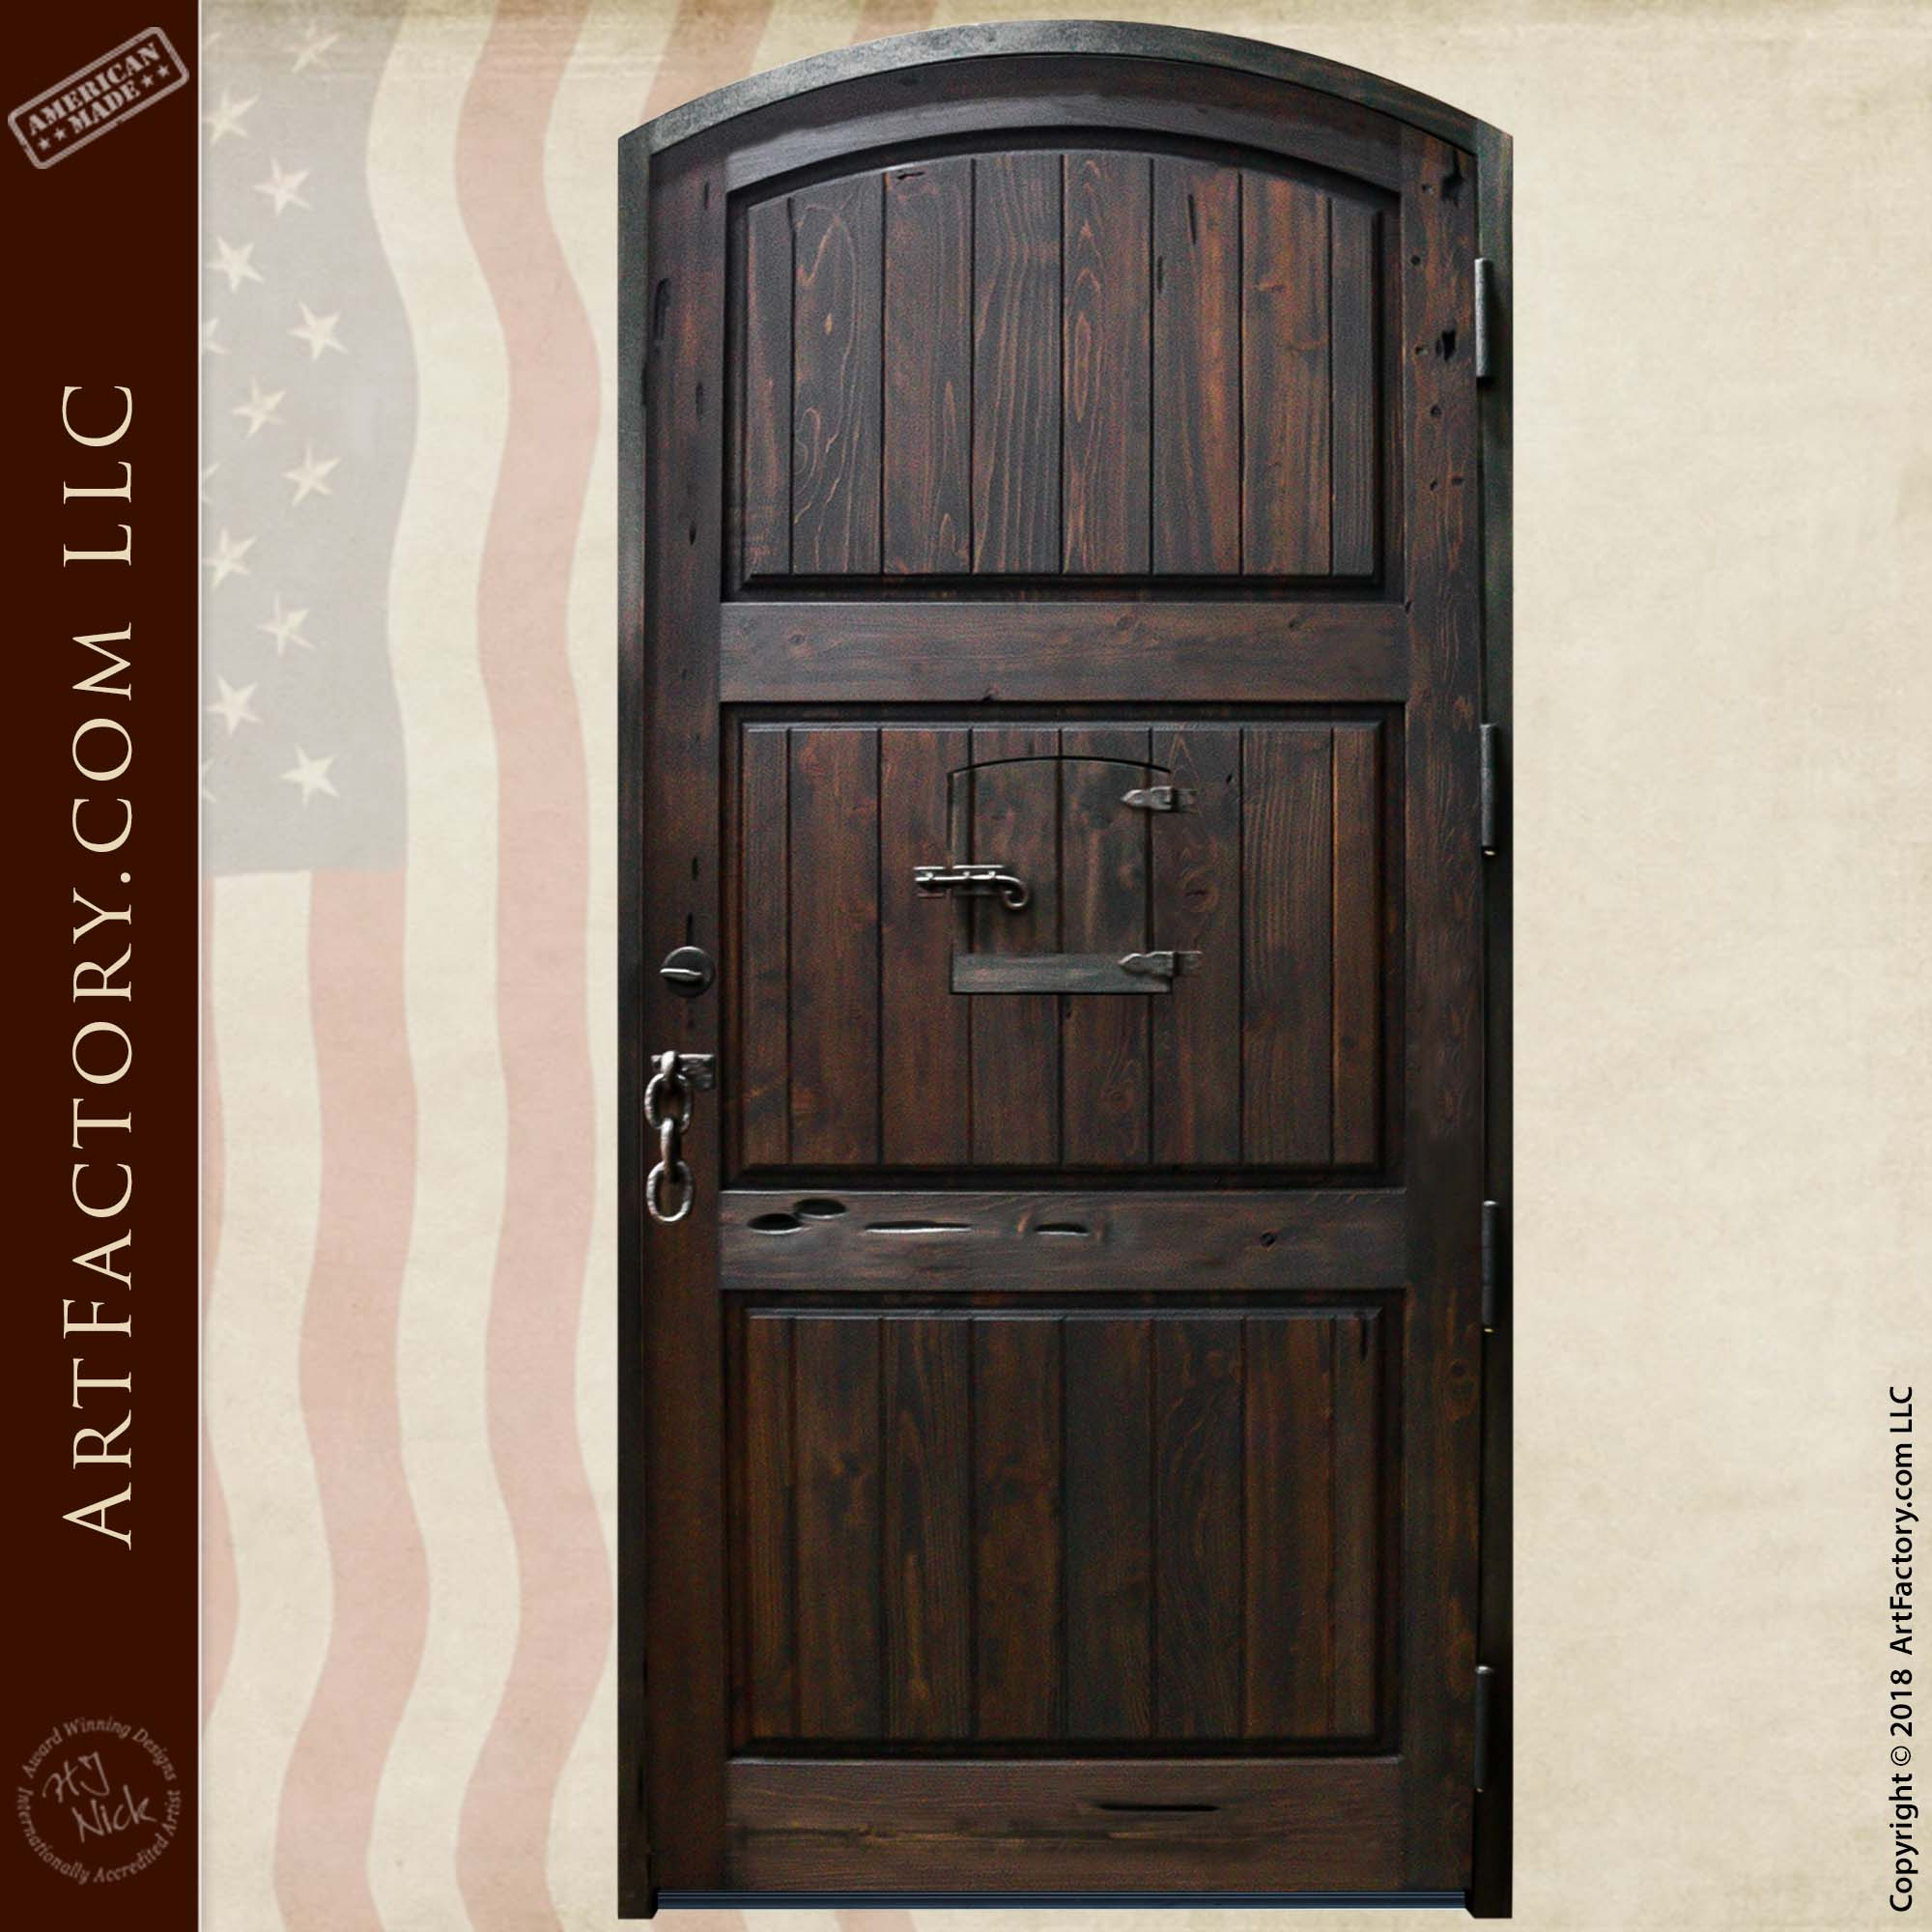 Hand Carved Douglas Fir Exterior Door With Sidelights – 7104ST https://artfactory.com/product/hand-carved-douglas-fir-exterior-door-with-sidelights-7104st/ Anytime How Heard About Us - Google